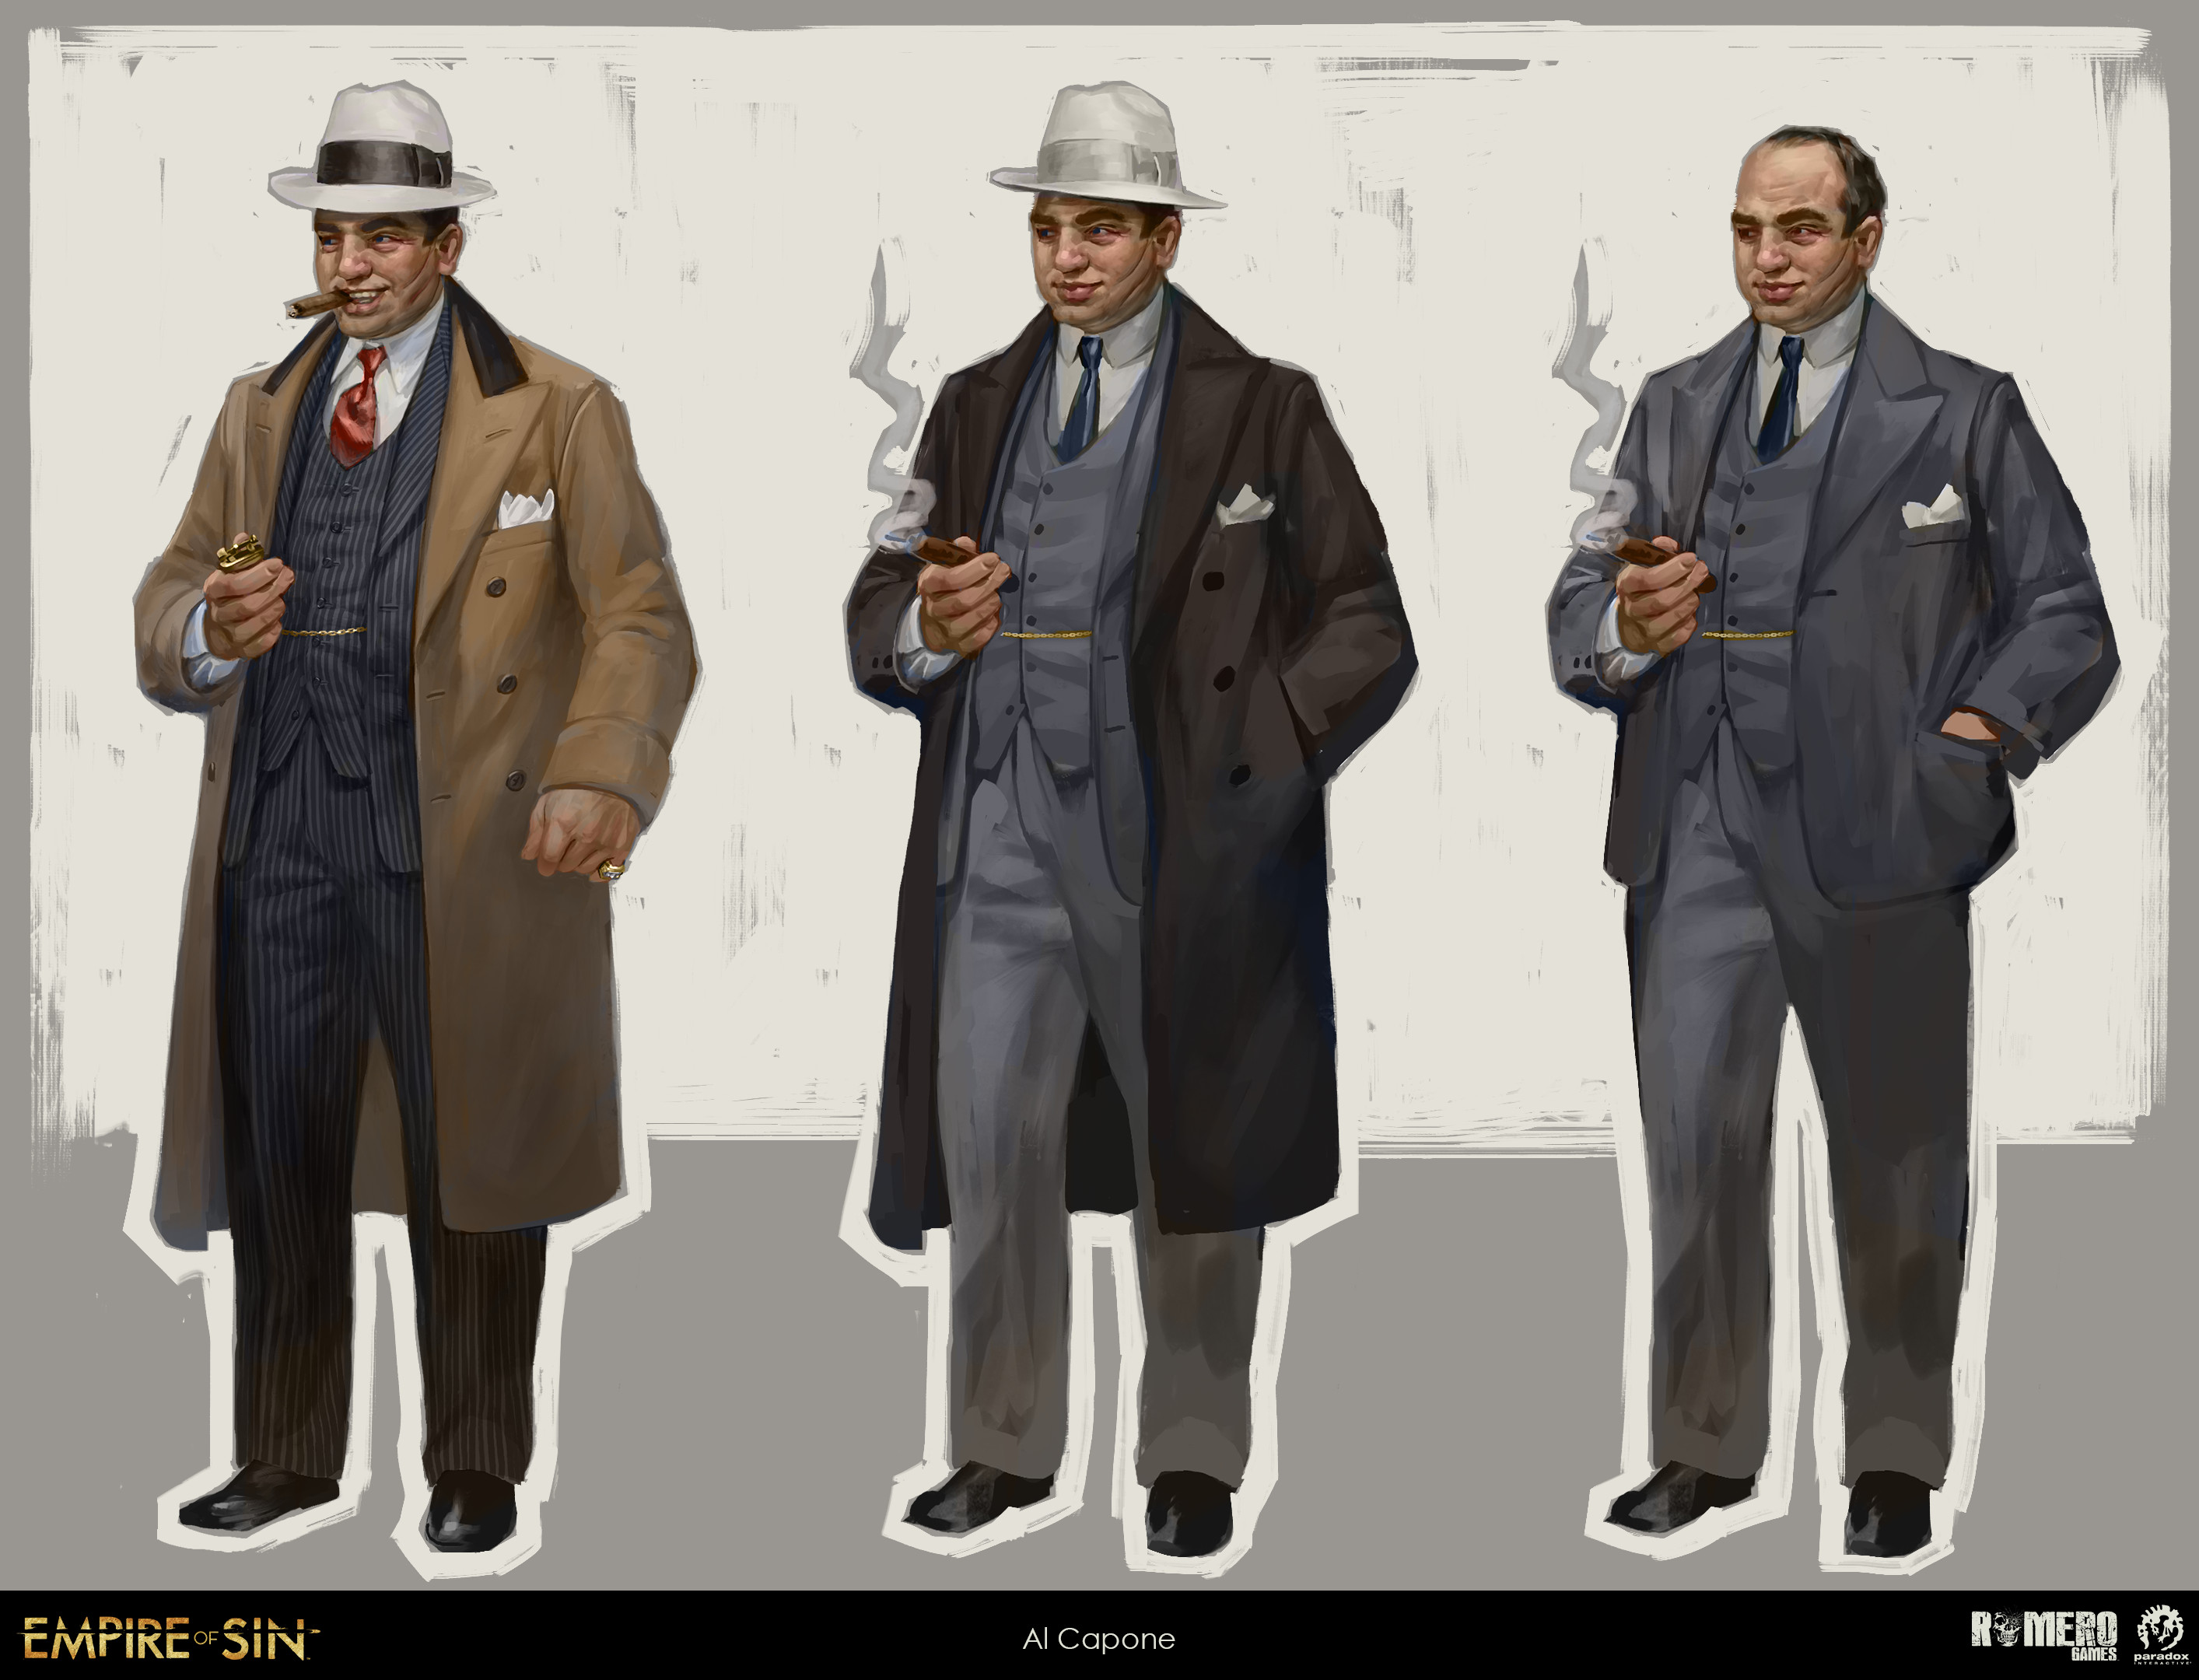 Al Capone concept art. Italian-American boss of The Outfit.